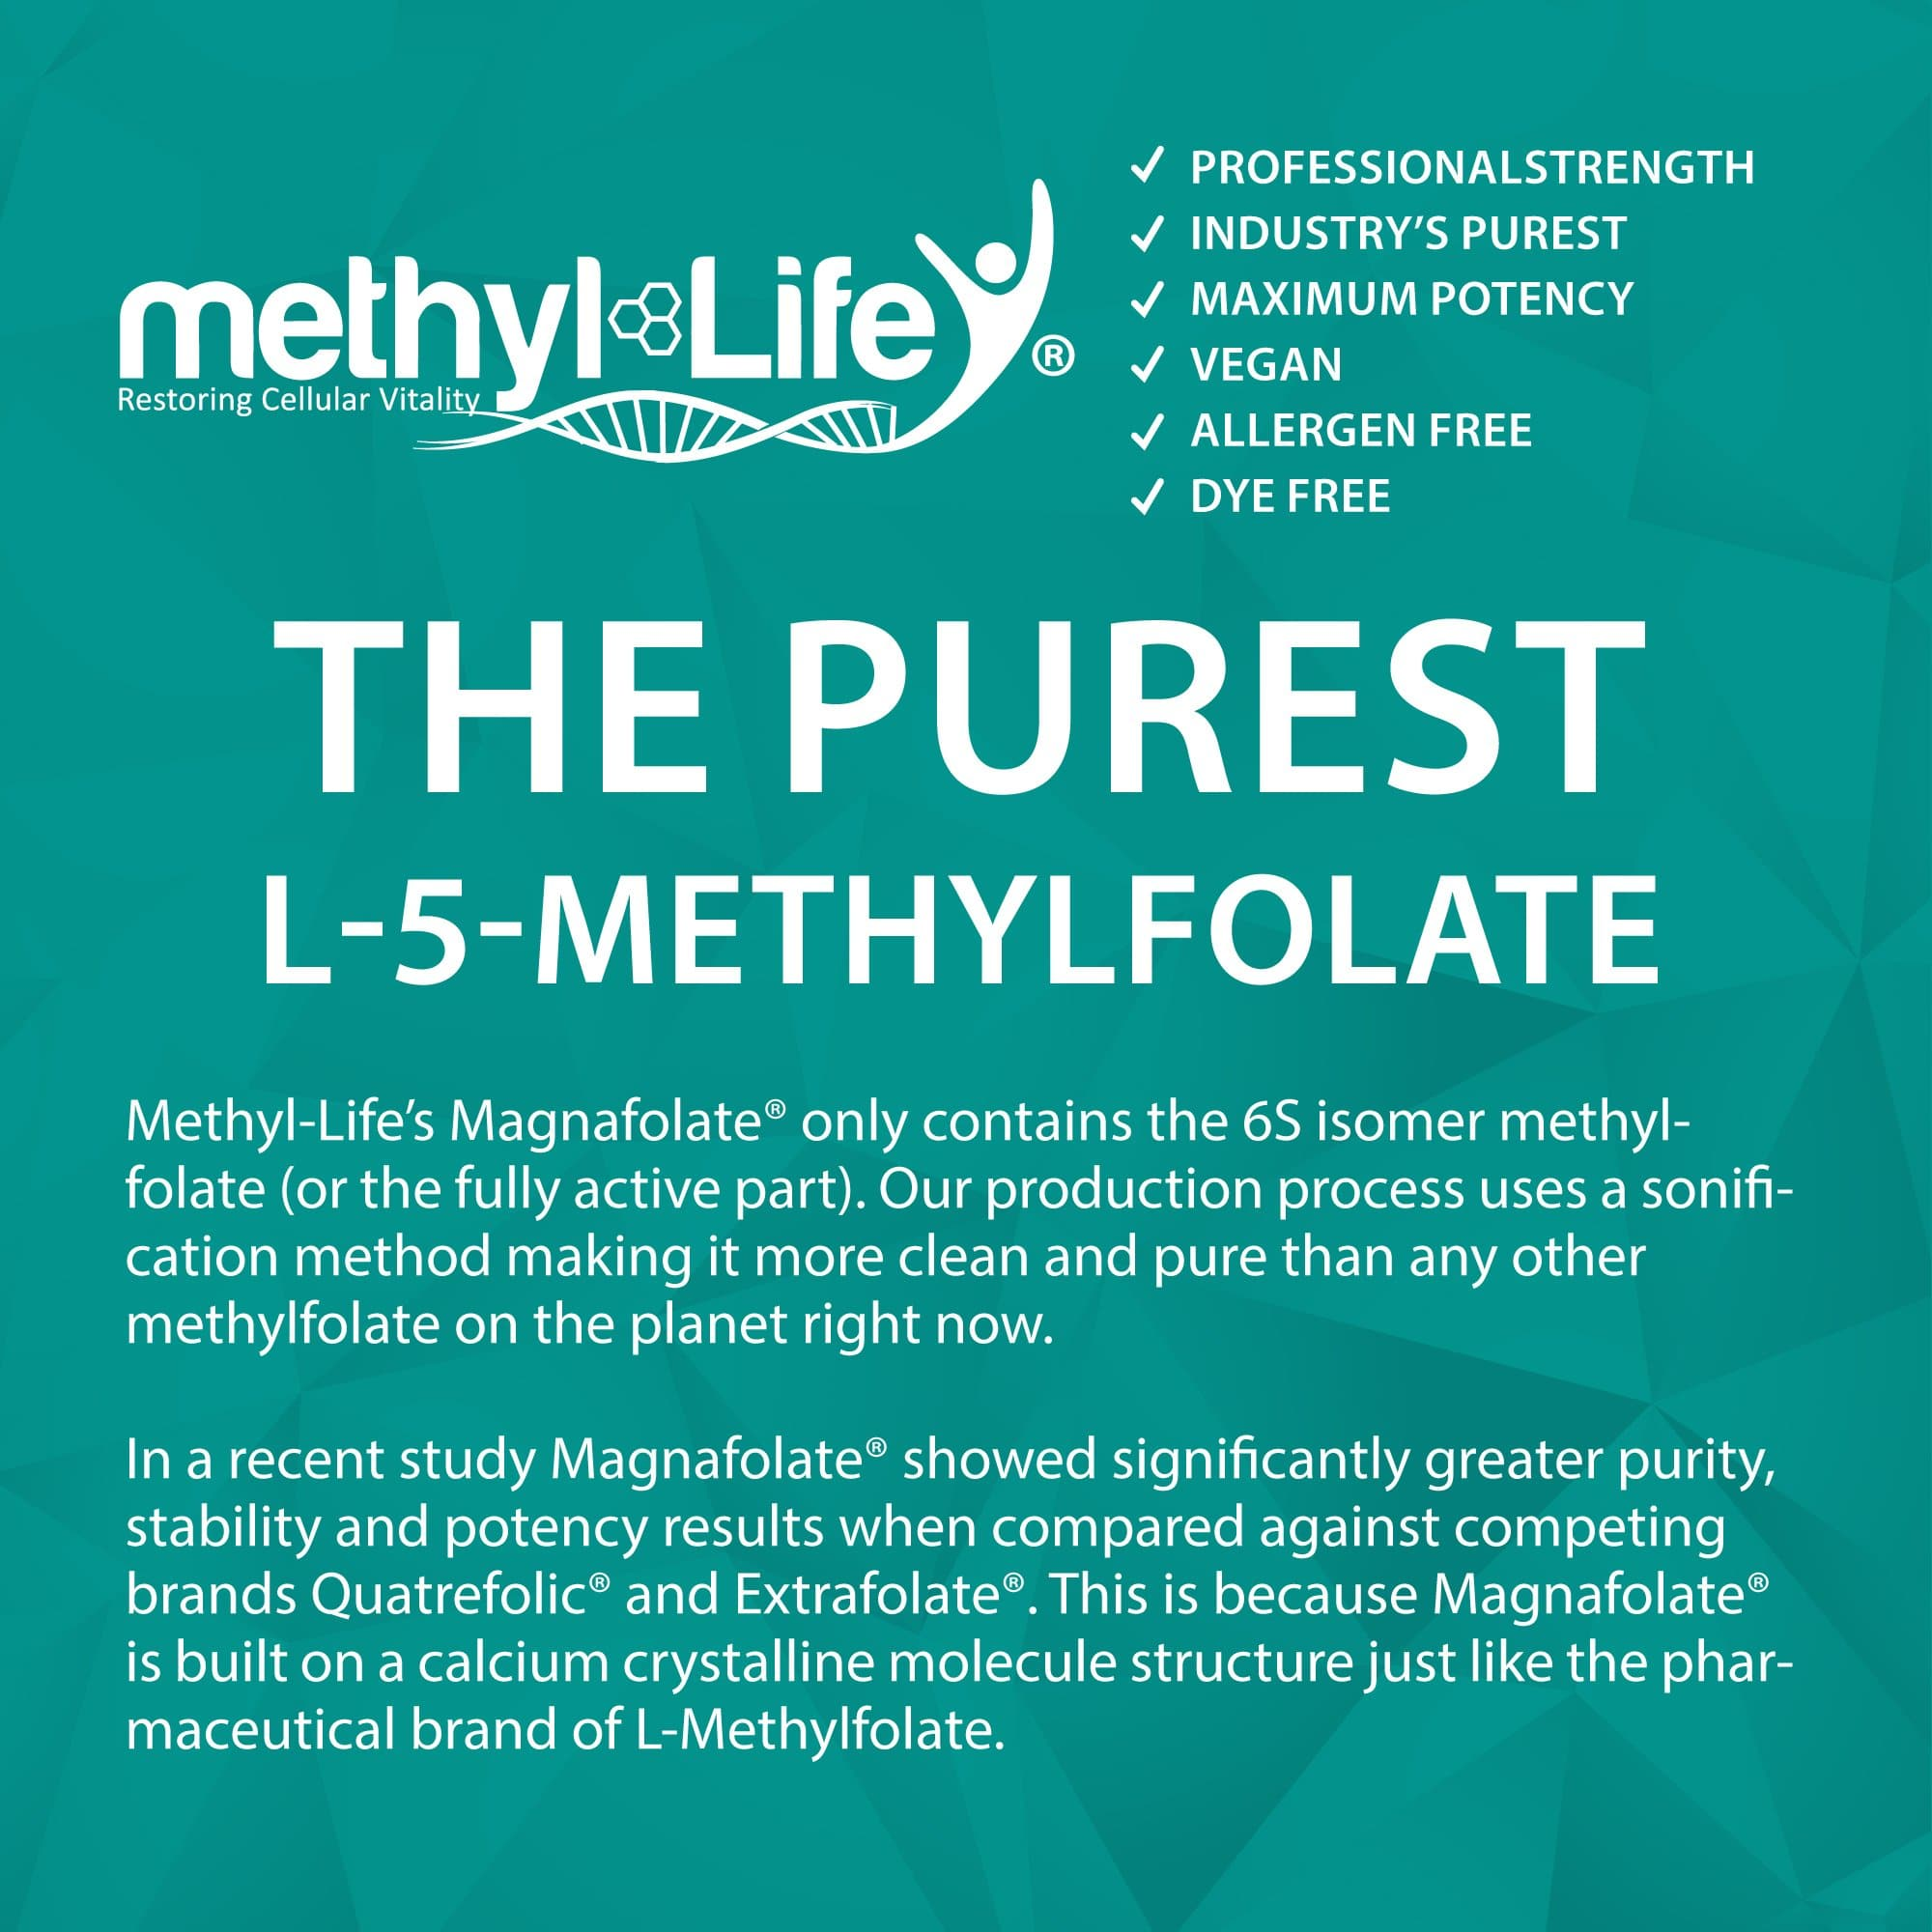 l-methylfolate 15 mg (the purest l-5-methylfolate)